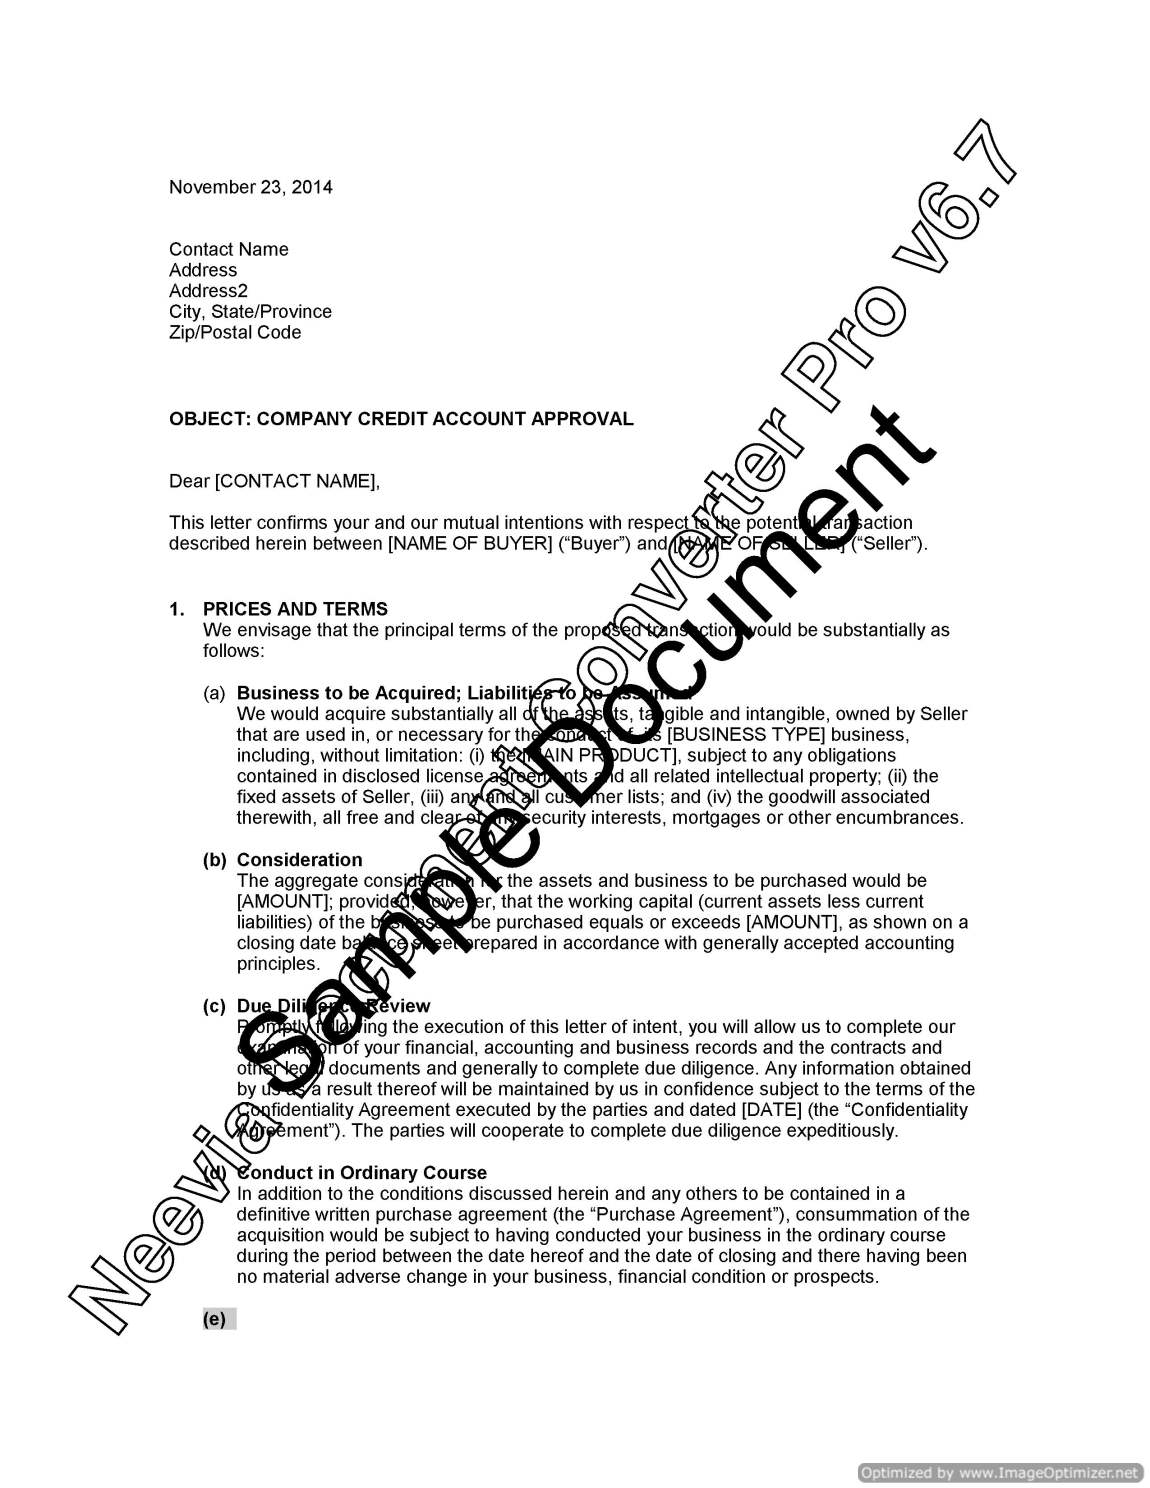 Letter of intent to purchase business teacheng letter spiritdancerdesigns Choice Image